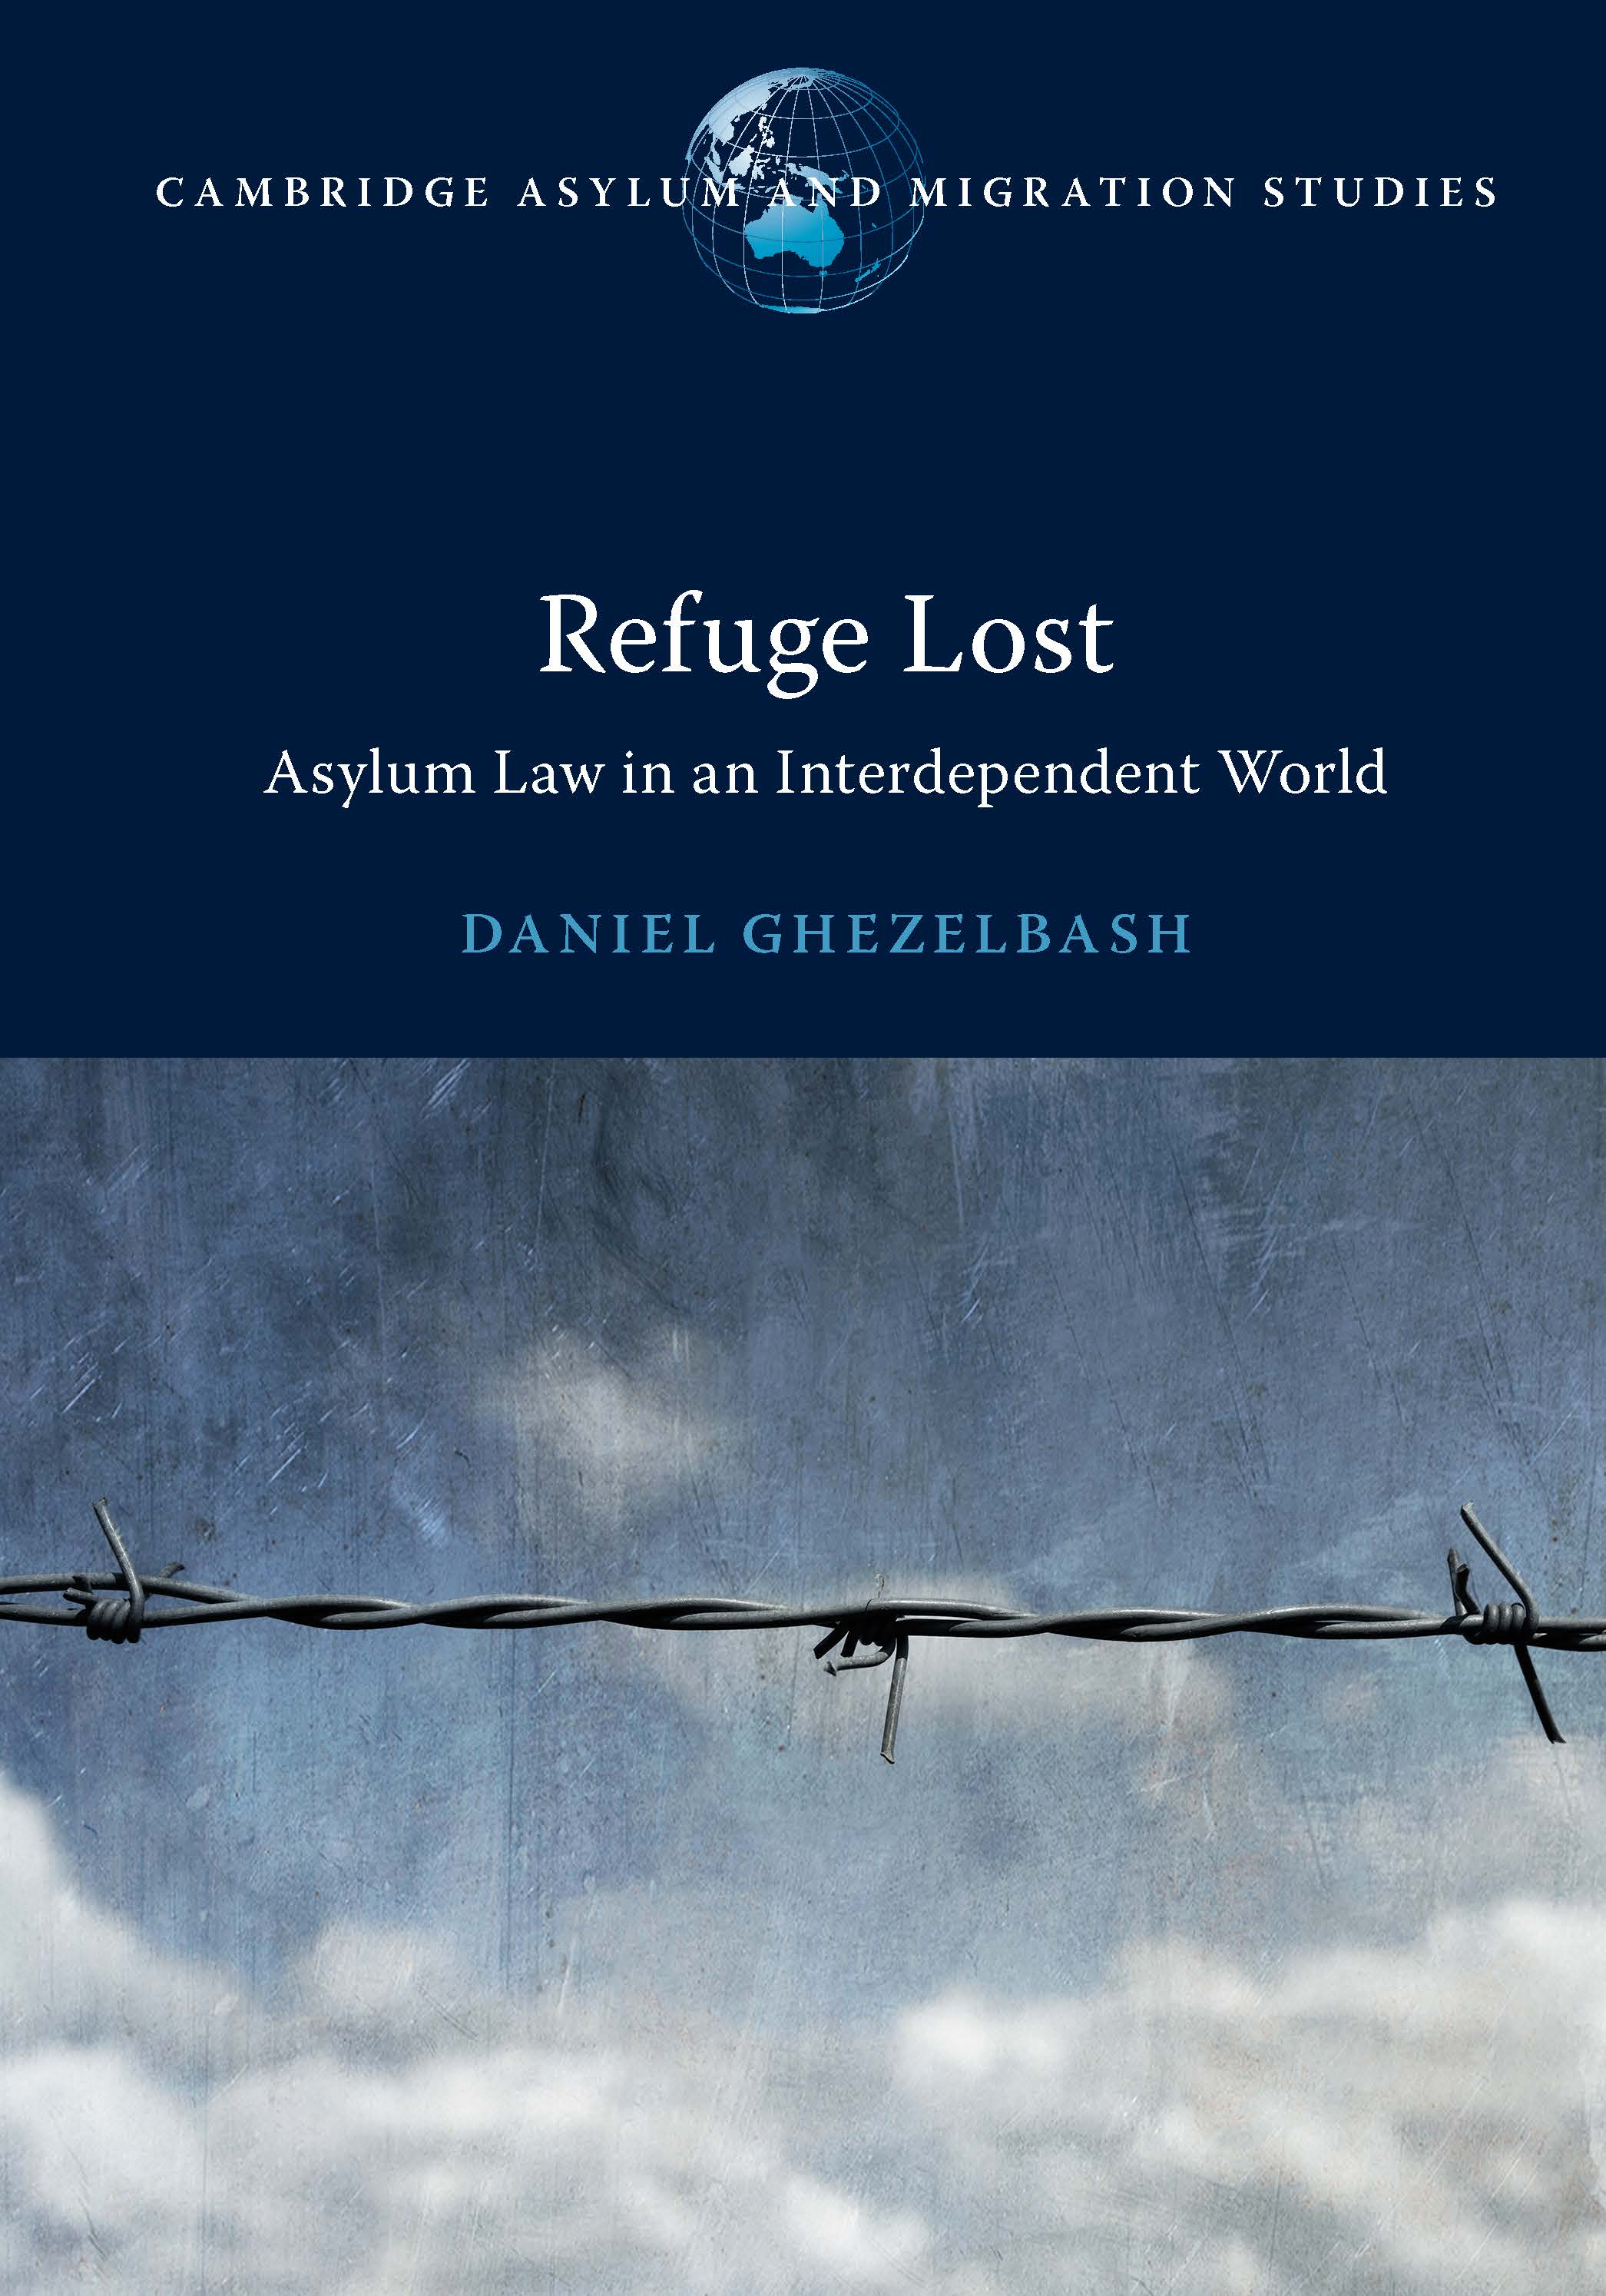 Refuge Lost: Asylum Law in an Interdependent World by Daniel Ghezelbash